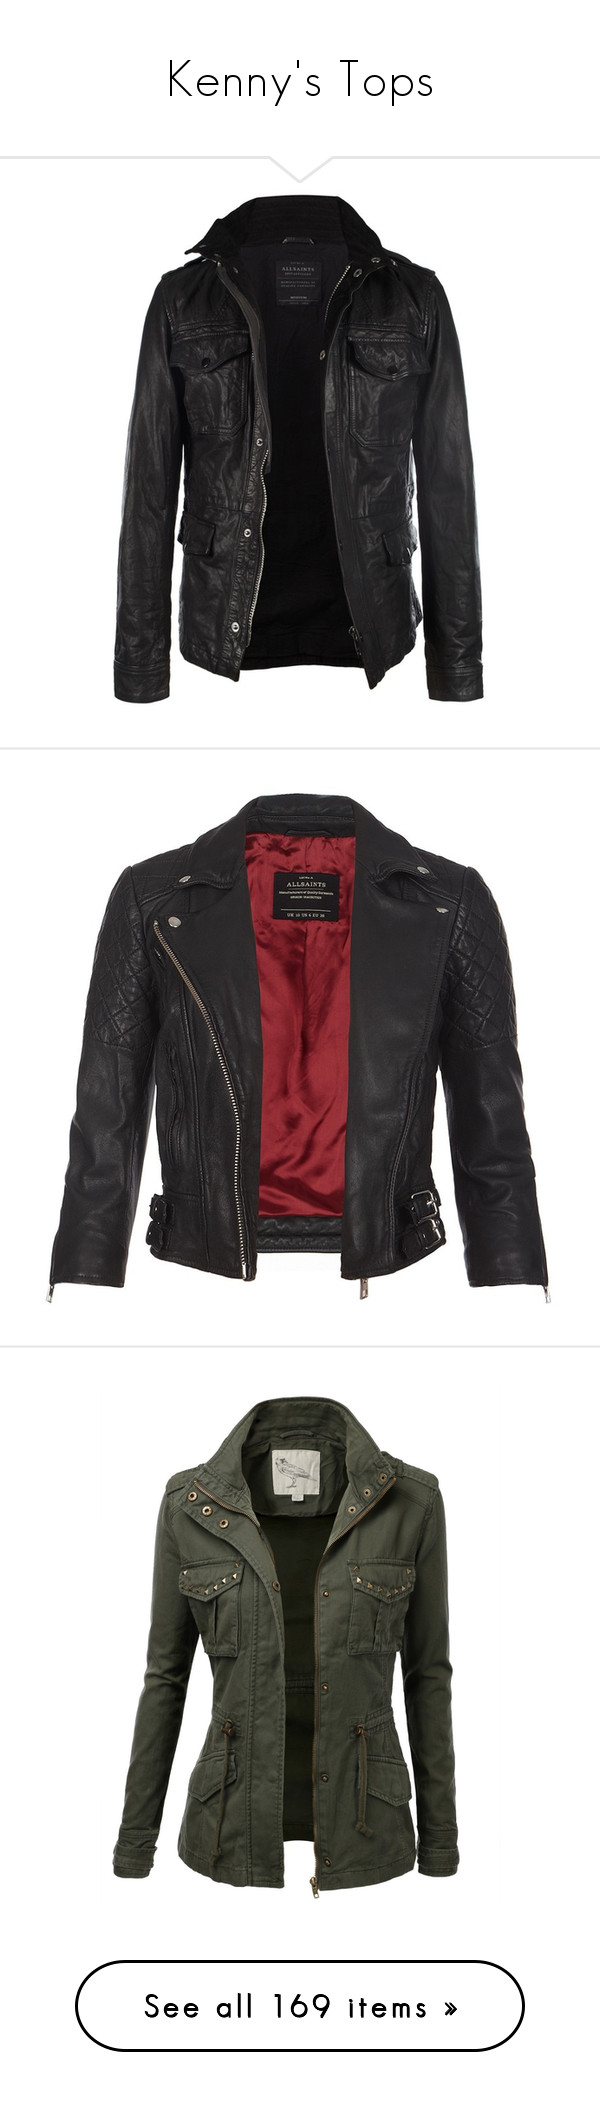 """""""Kenny's Tops"""" by ramble-on-my-wayward-cherry-pie ❤ liked on Polyvore featuring men's fashion, men's clothing, men's outerwear, men's jackets, jackets, men, outerwear, tops, mens leather jacket and mens slim fit leather jacket"""